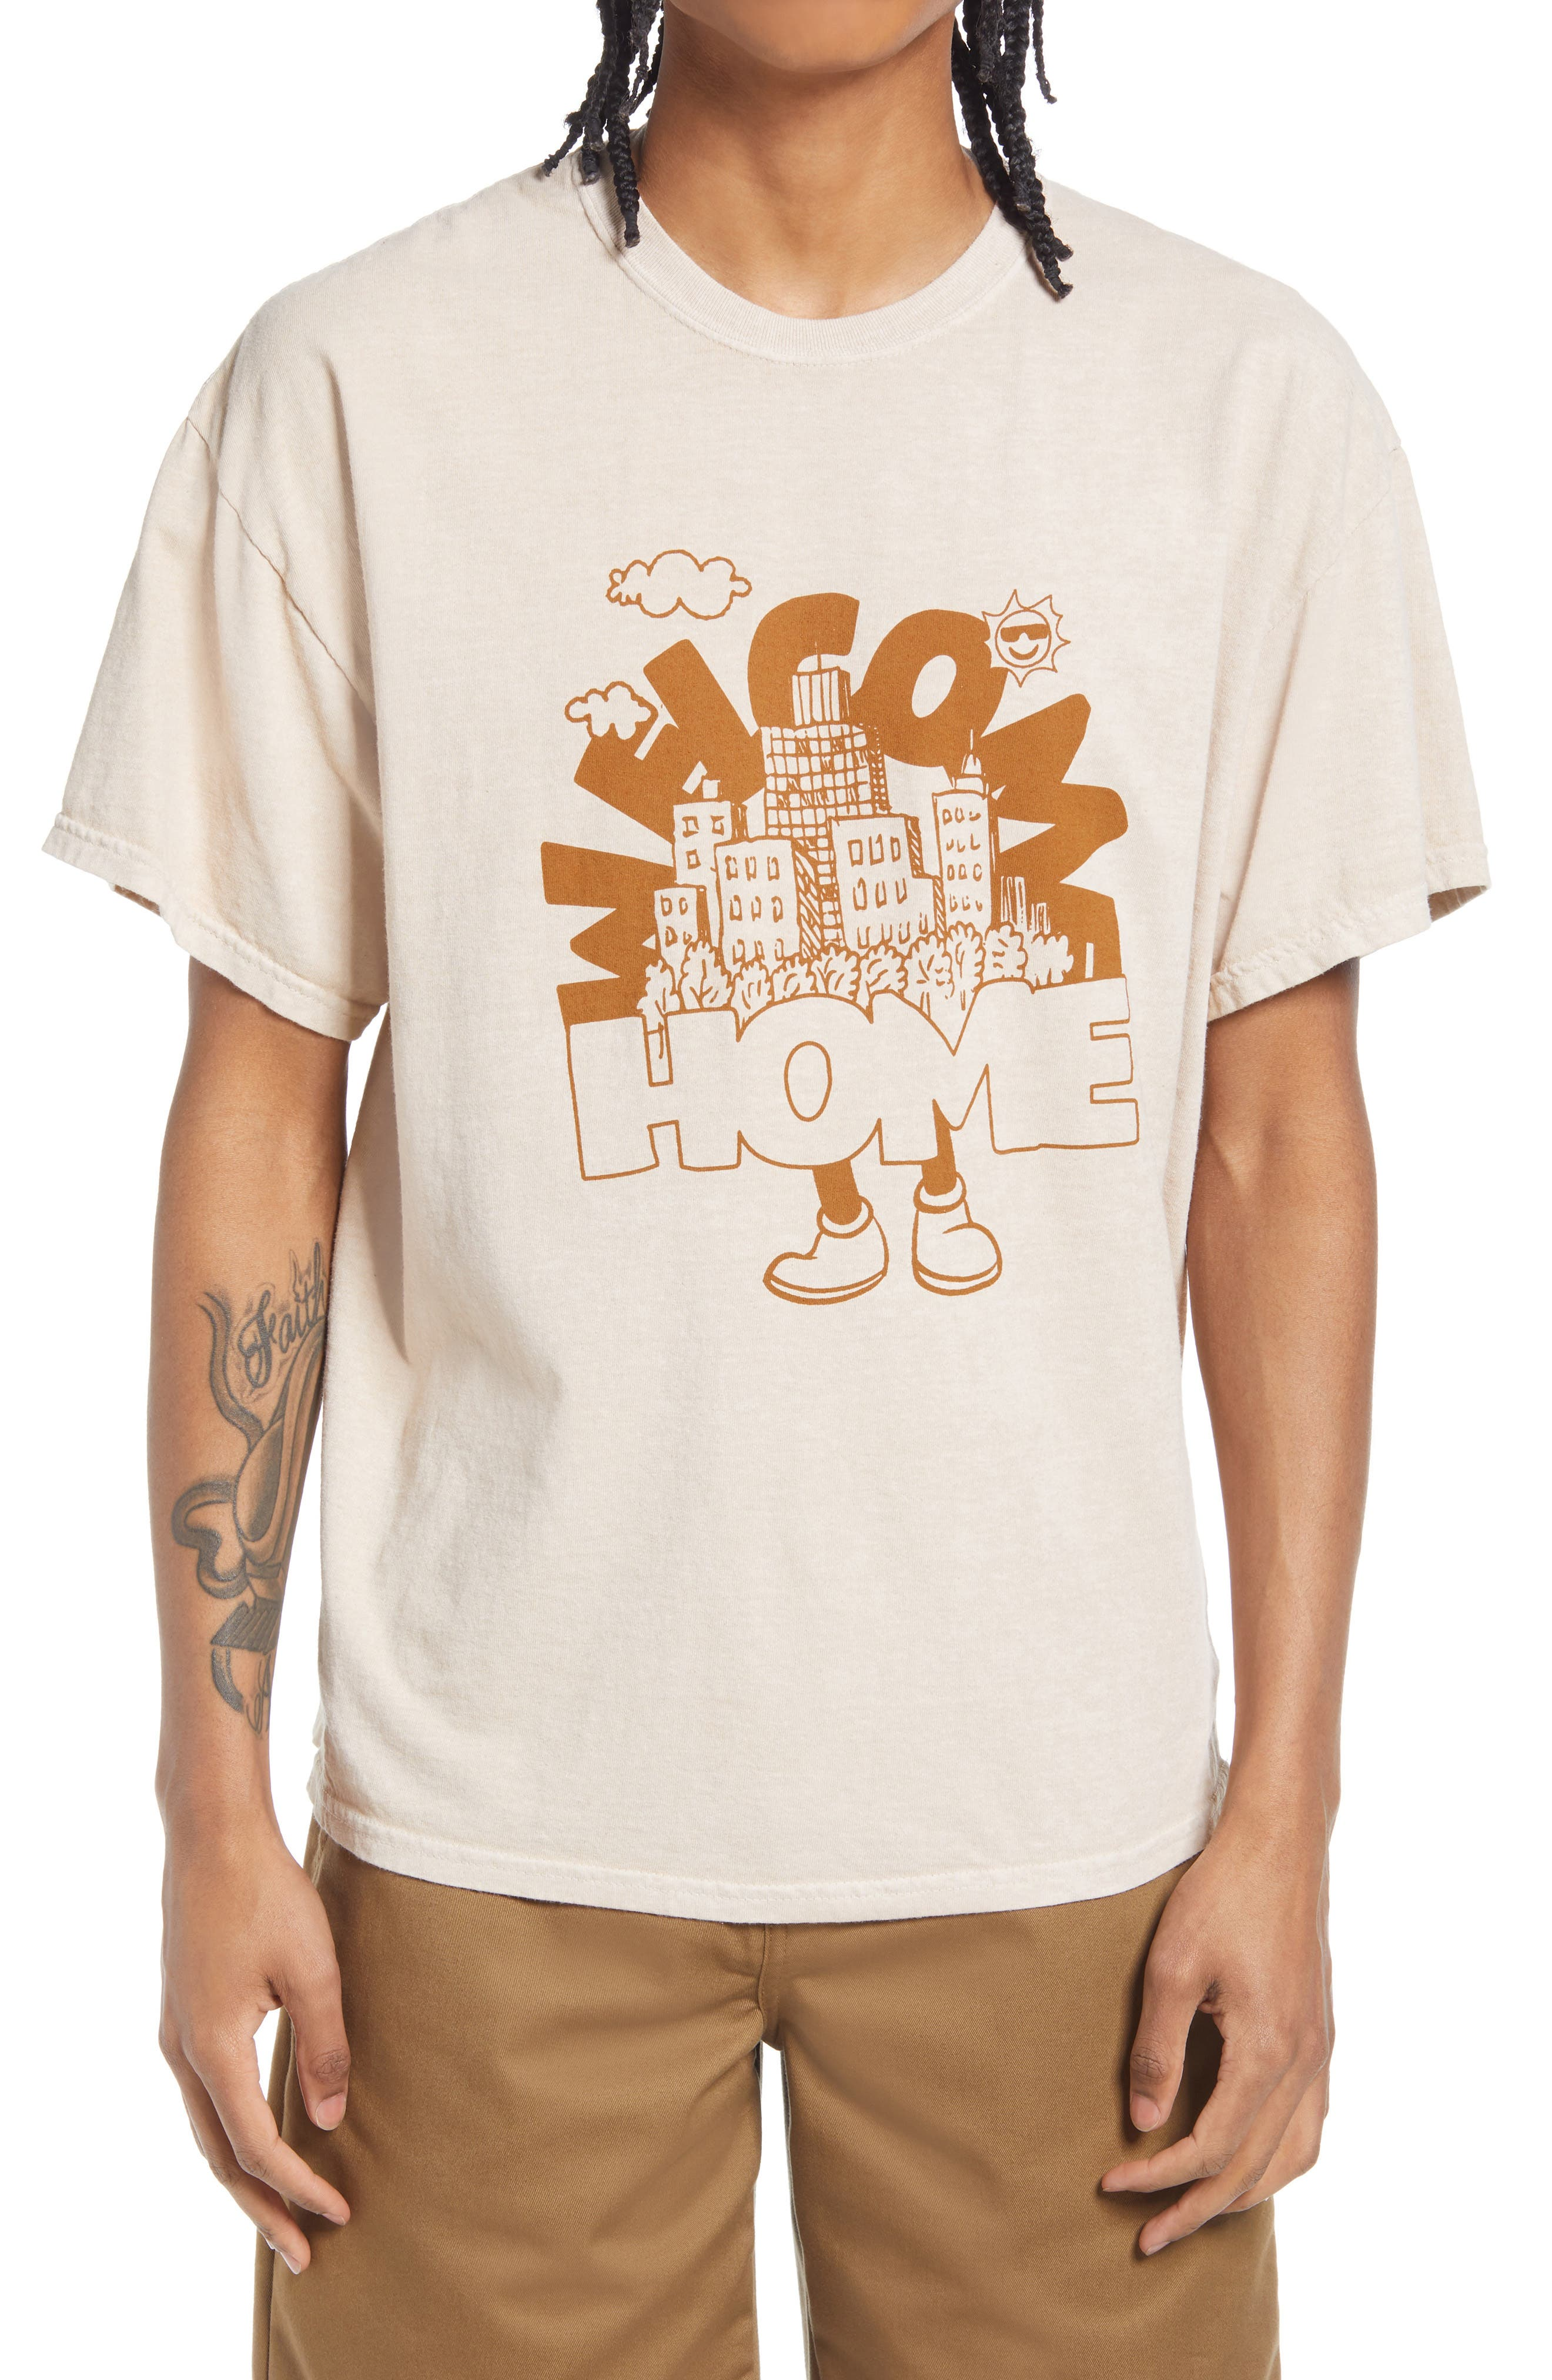 Welcome Home Cotton Graphic Tee